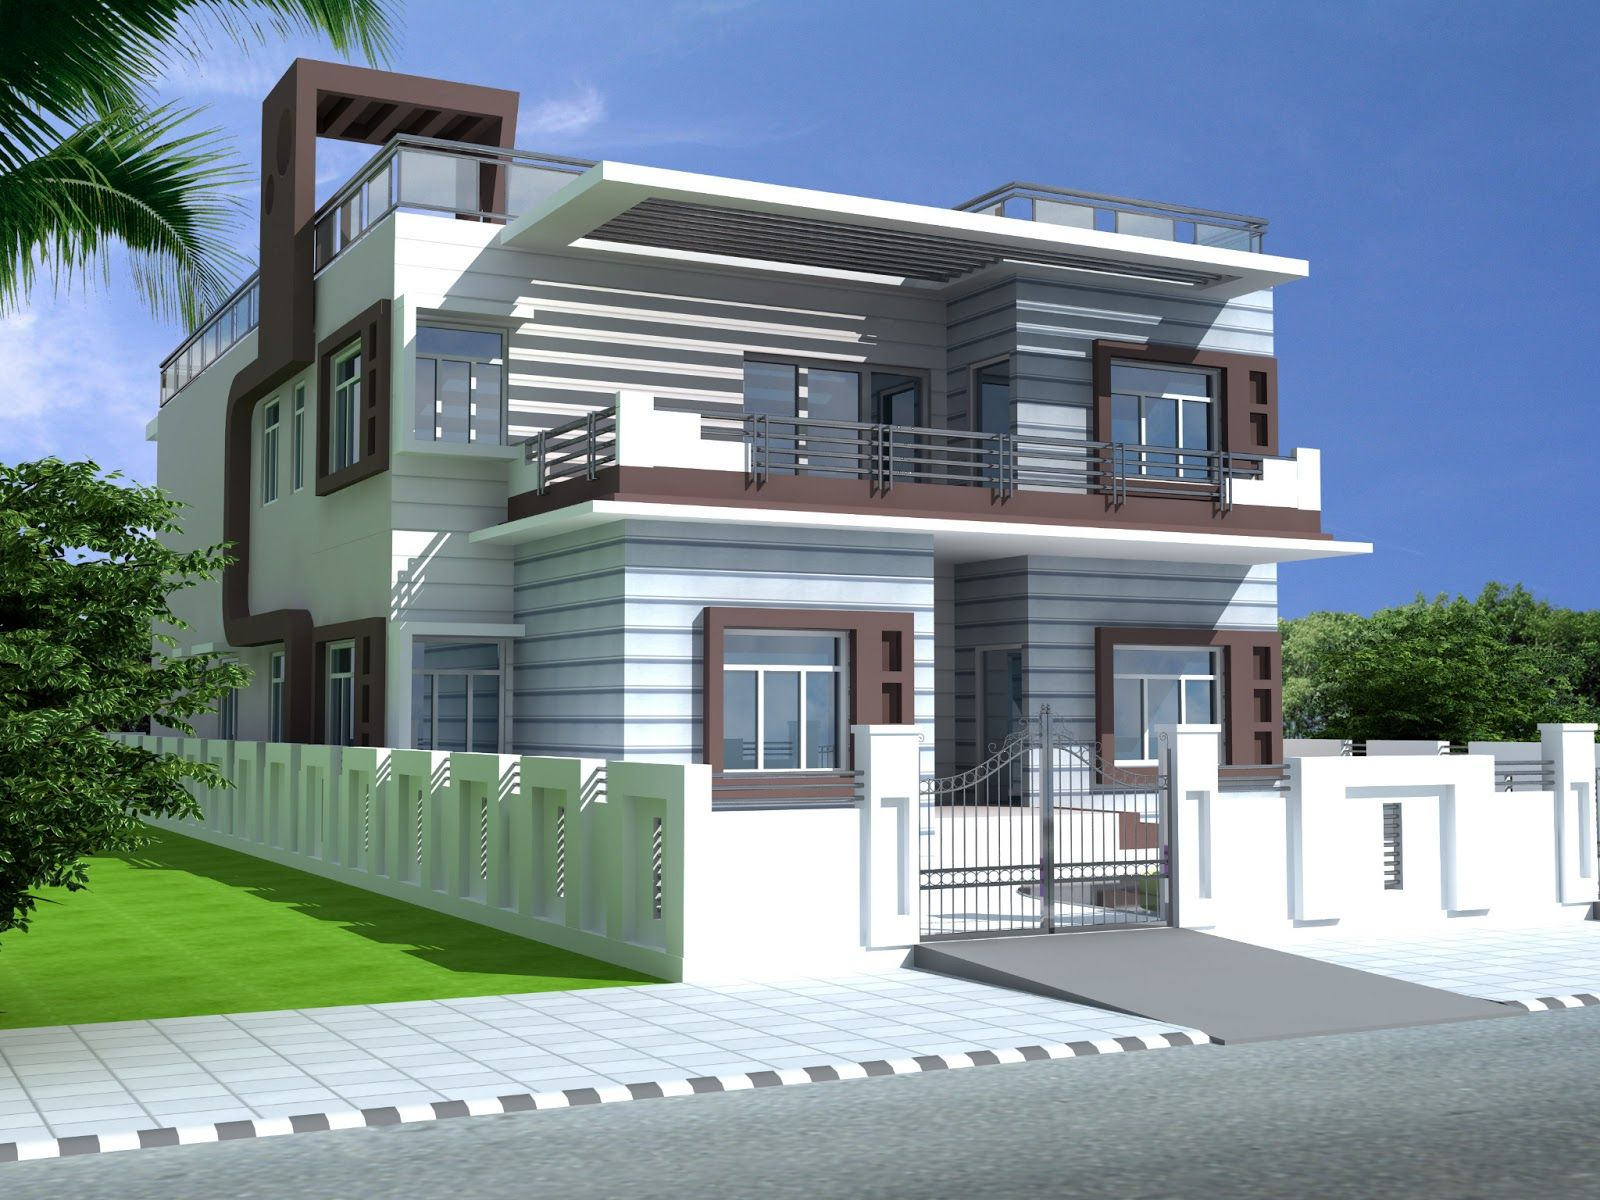 6 bedrooms duplex house design in 390m2 13m x 30m for Modern house front design